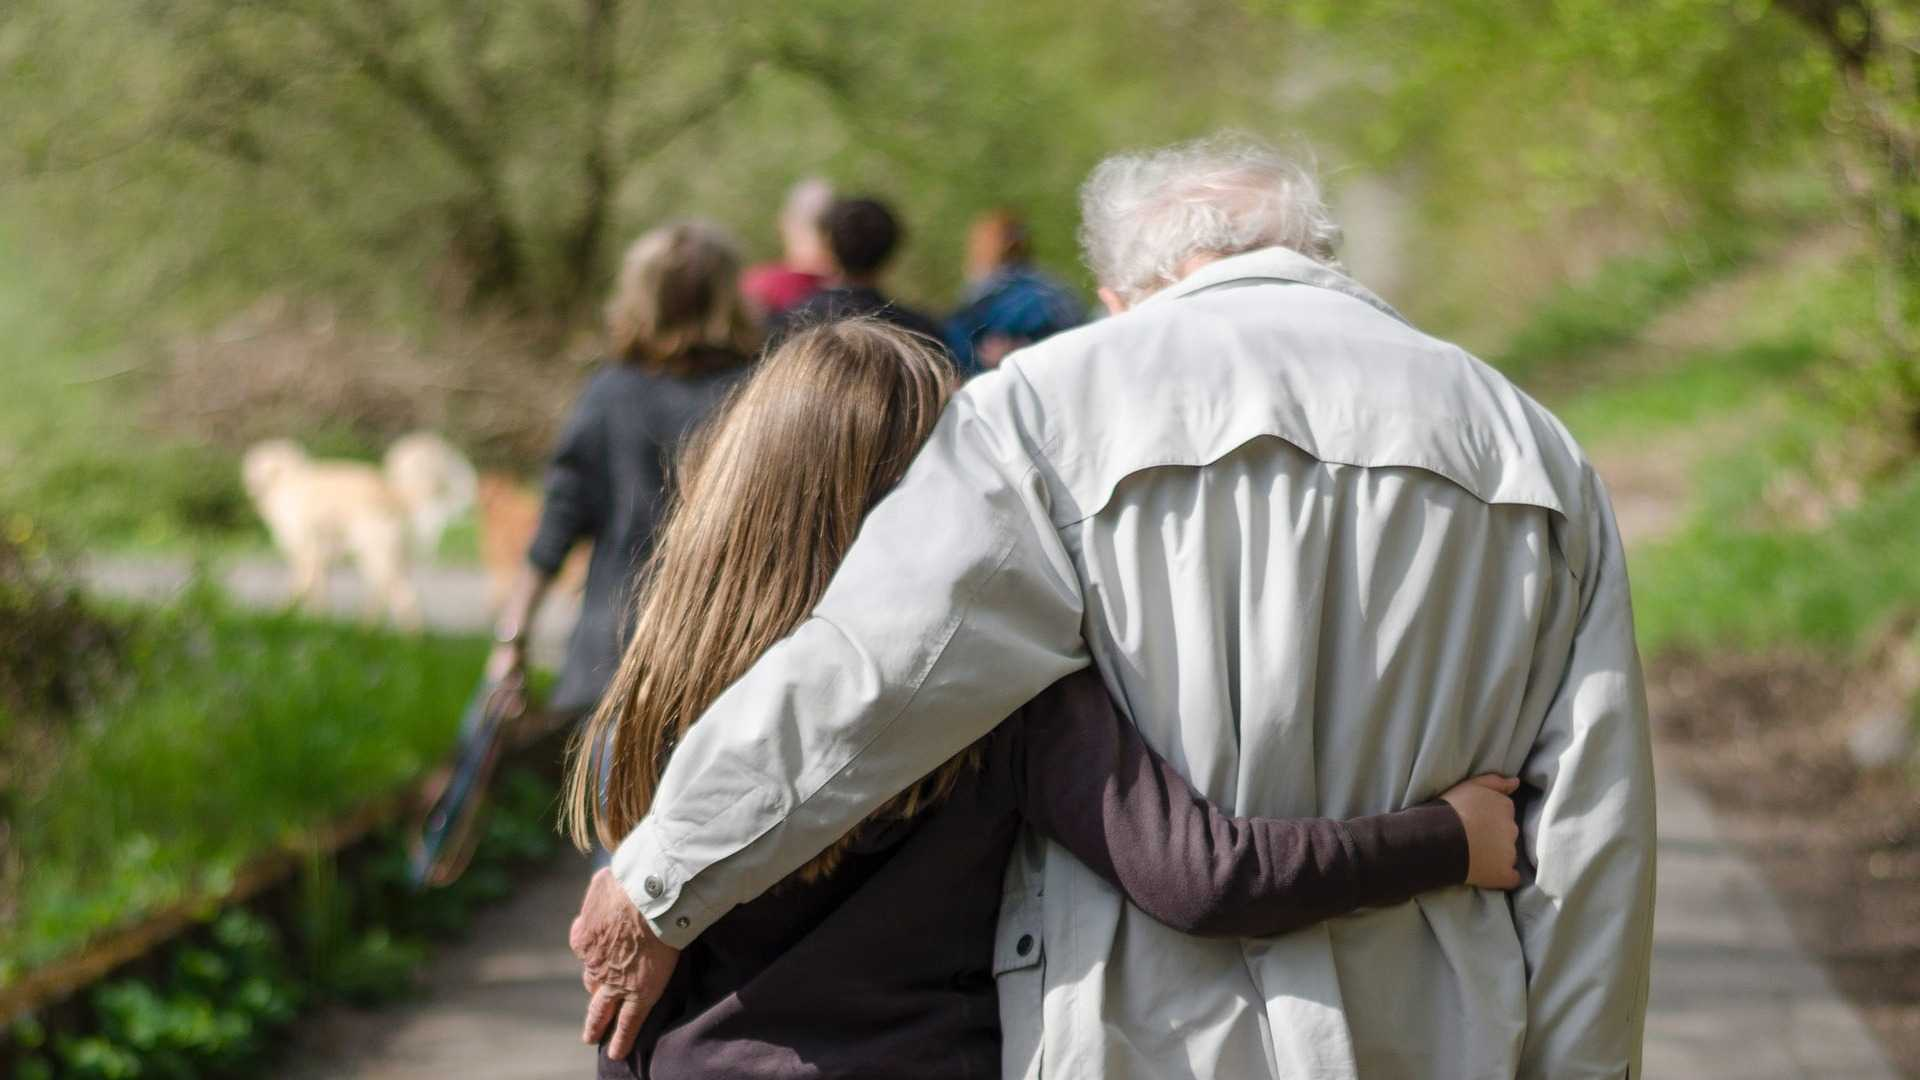 An image of women old man walking alongside a young girl in a park.